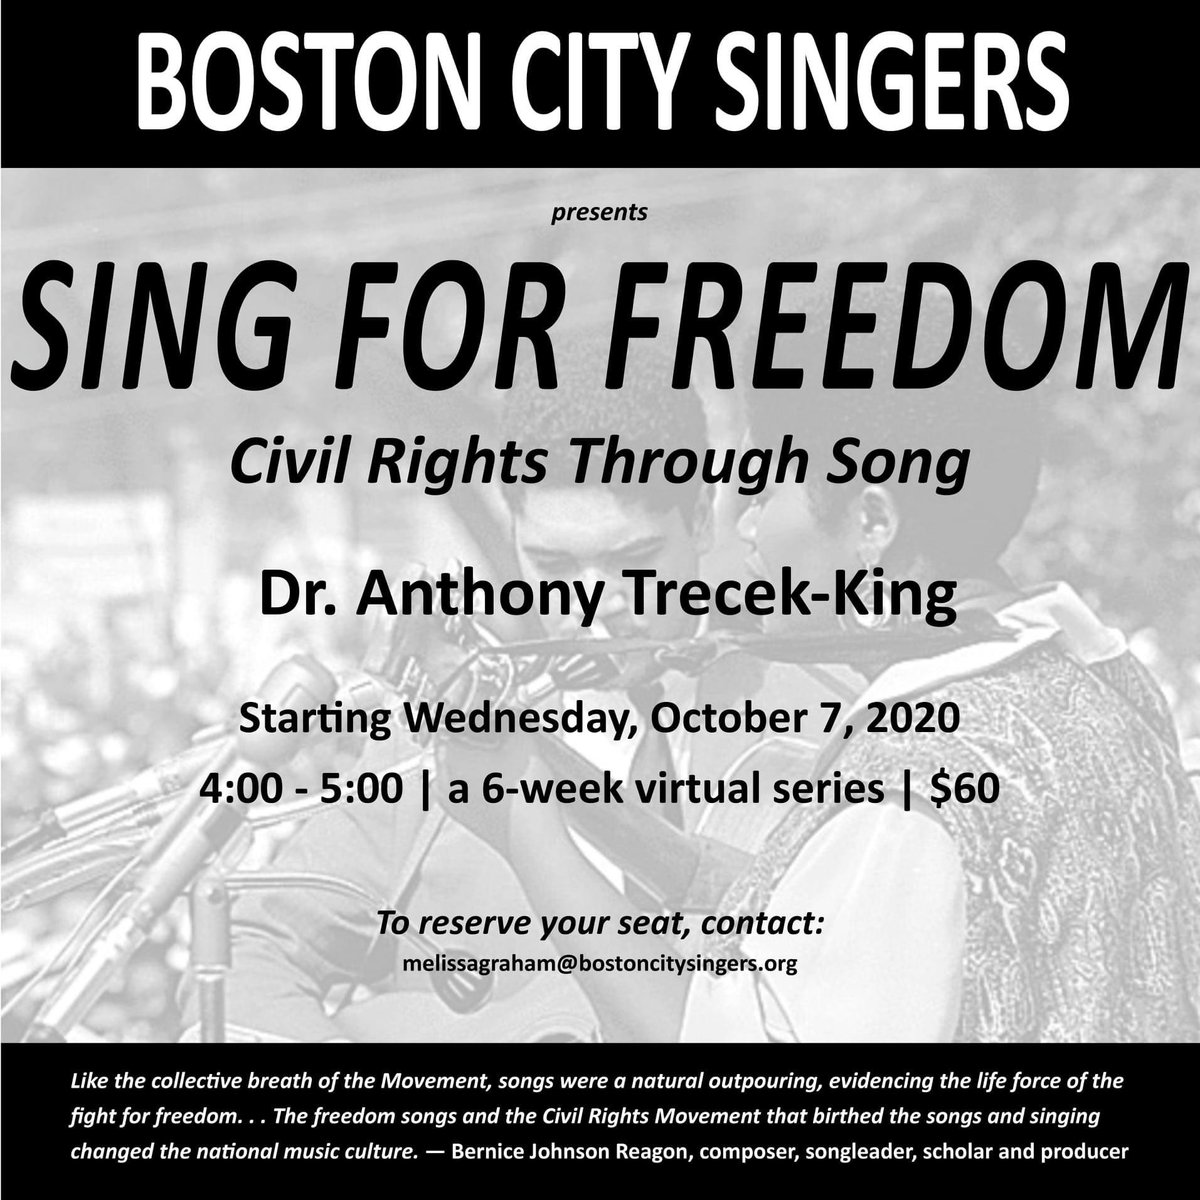 """Our electives start shortly!!! We welcome you to learn with us! """"Sing for Freedom"""" with Dr. Anthony Trecek-King, Wednesdays, 4 - 5 pm EST.  • • • #bostoncitysingers #bcs #singforfreedom  #elective #sing #learn #civilrights #choir #chorus #together #music https://t.co/Sfy6Kuk3s4"""